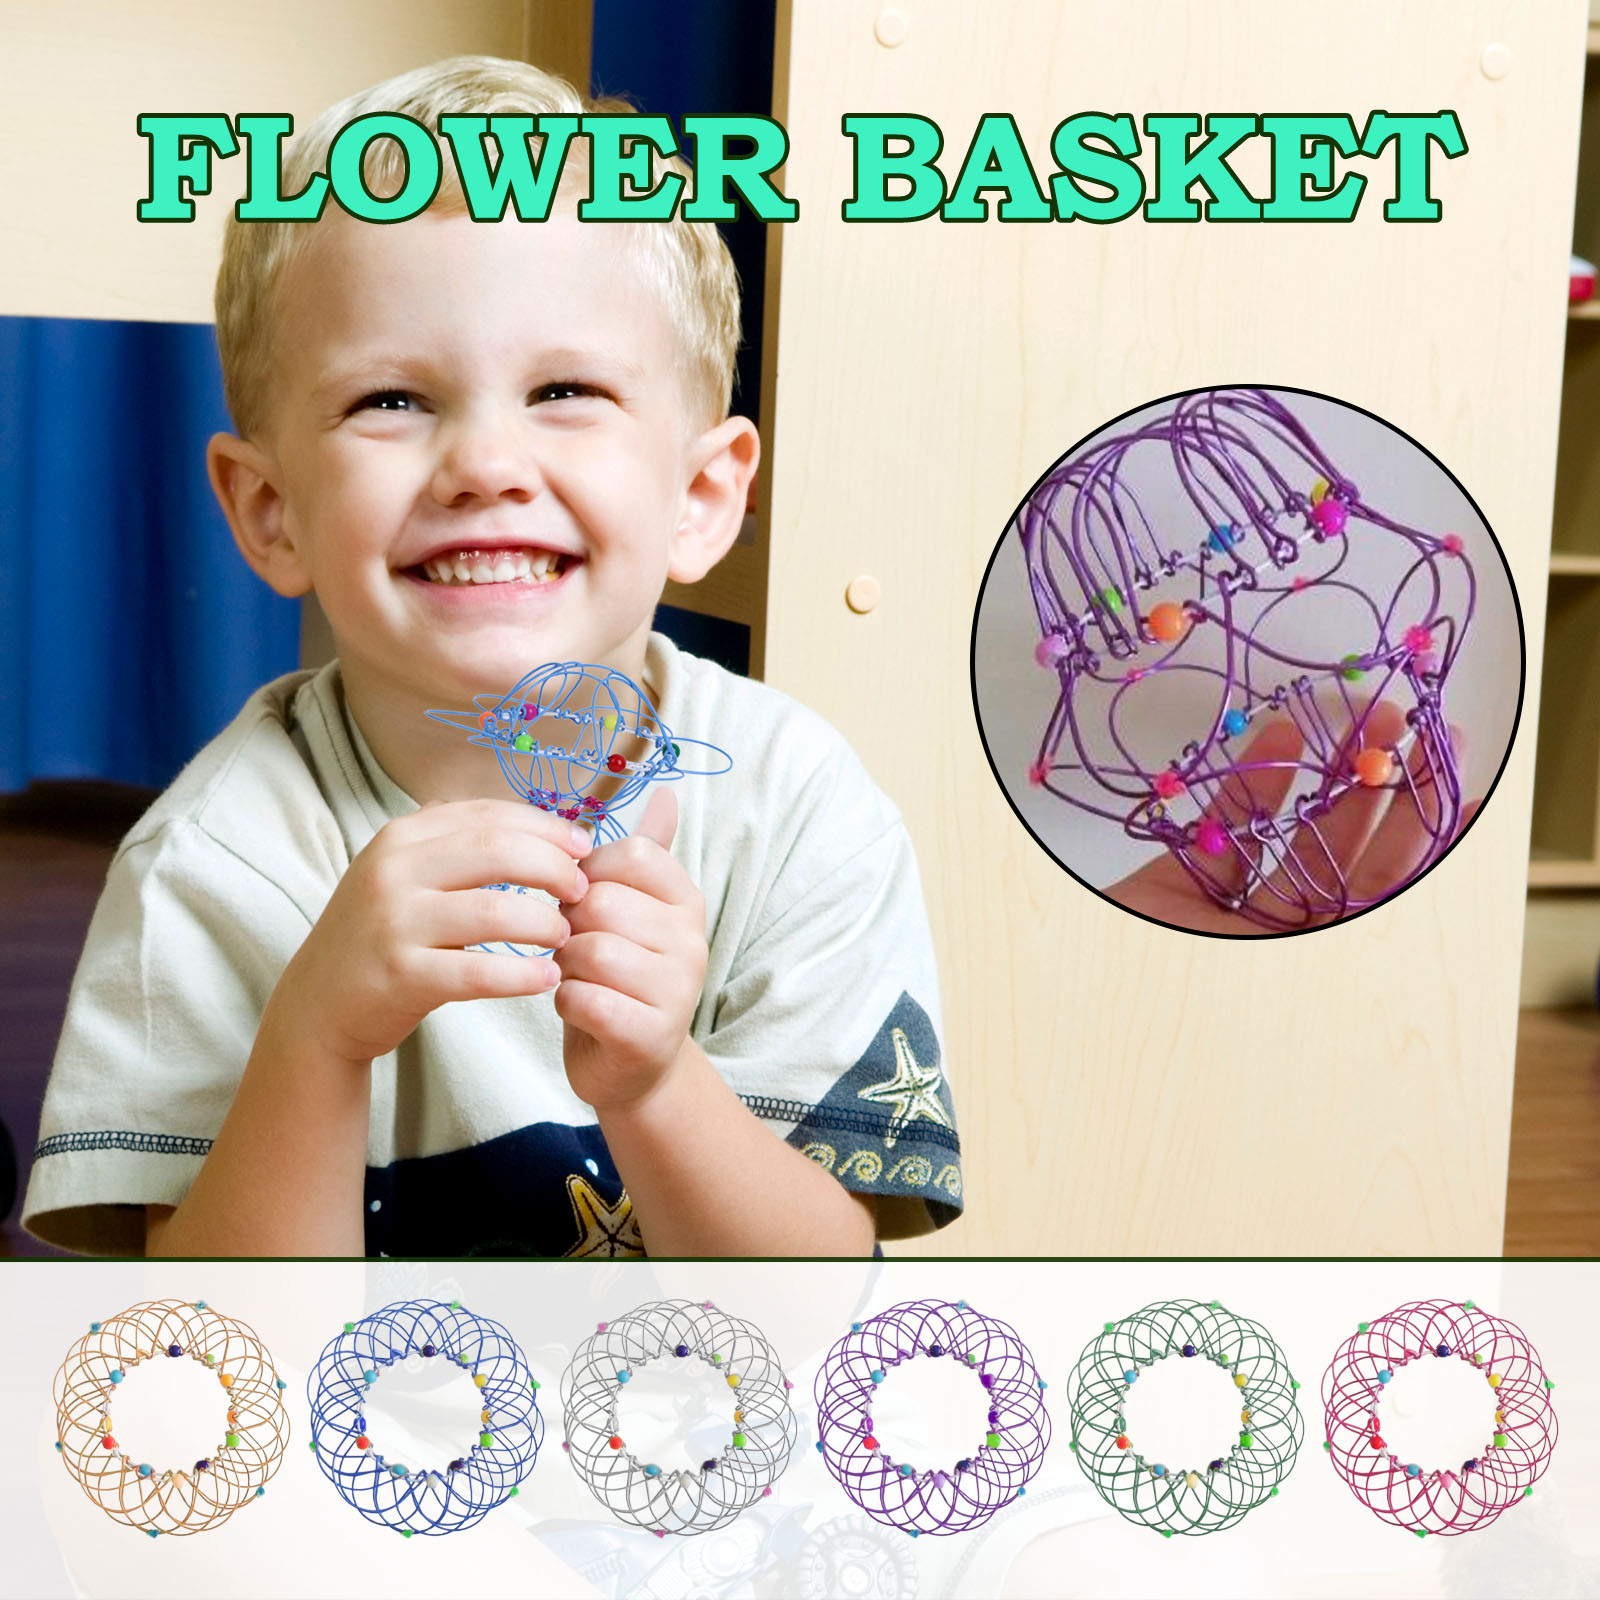 Decompression Flexible Basket Soft Steel Magic Iron Ring Ornament Gift For Child Children's Educational Toys Juguete 2021